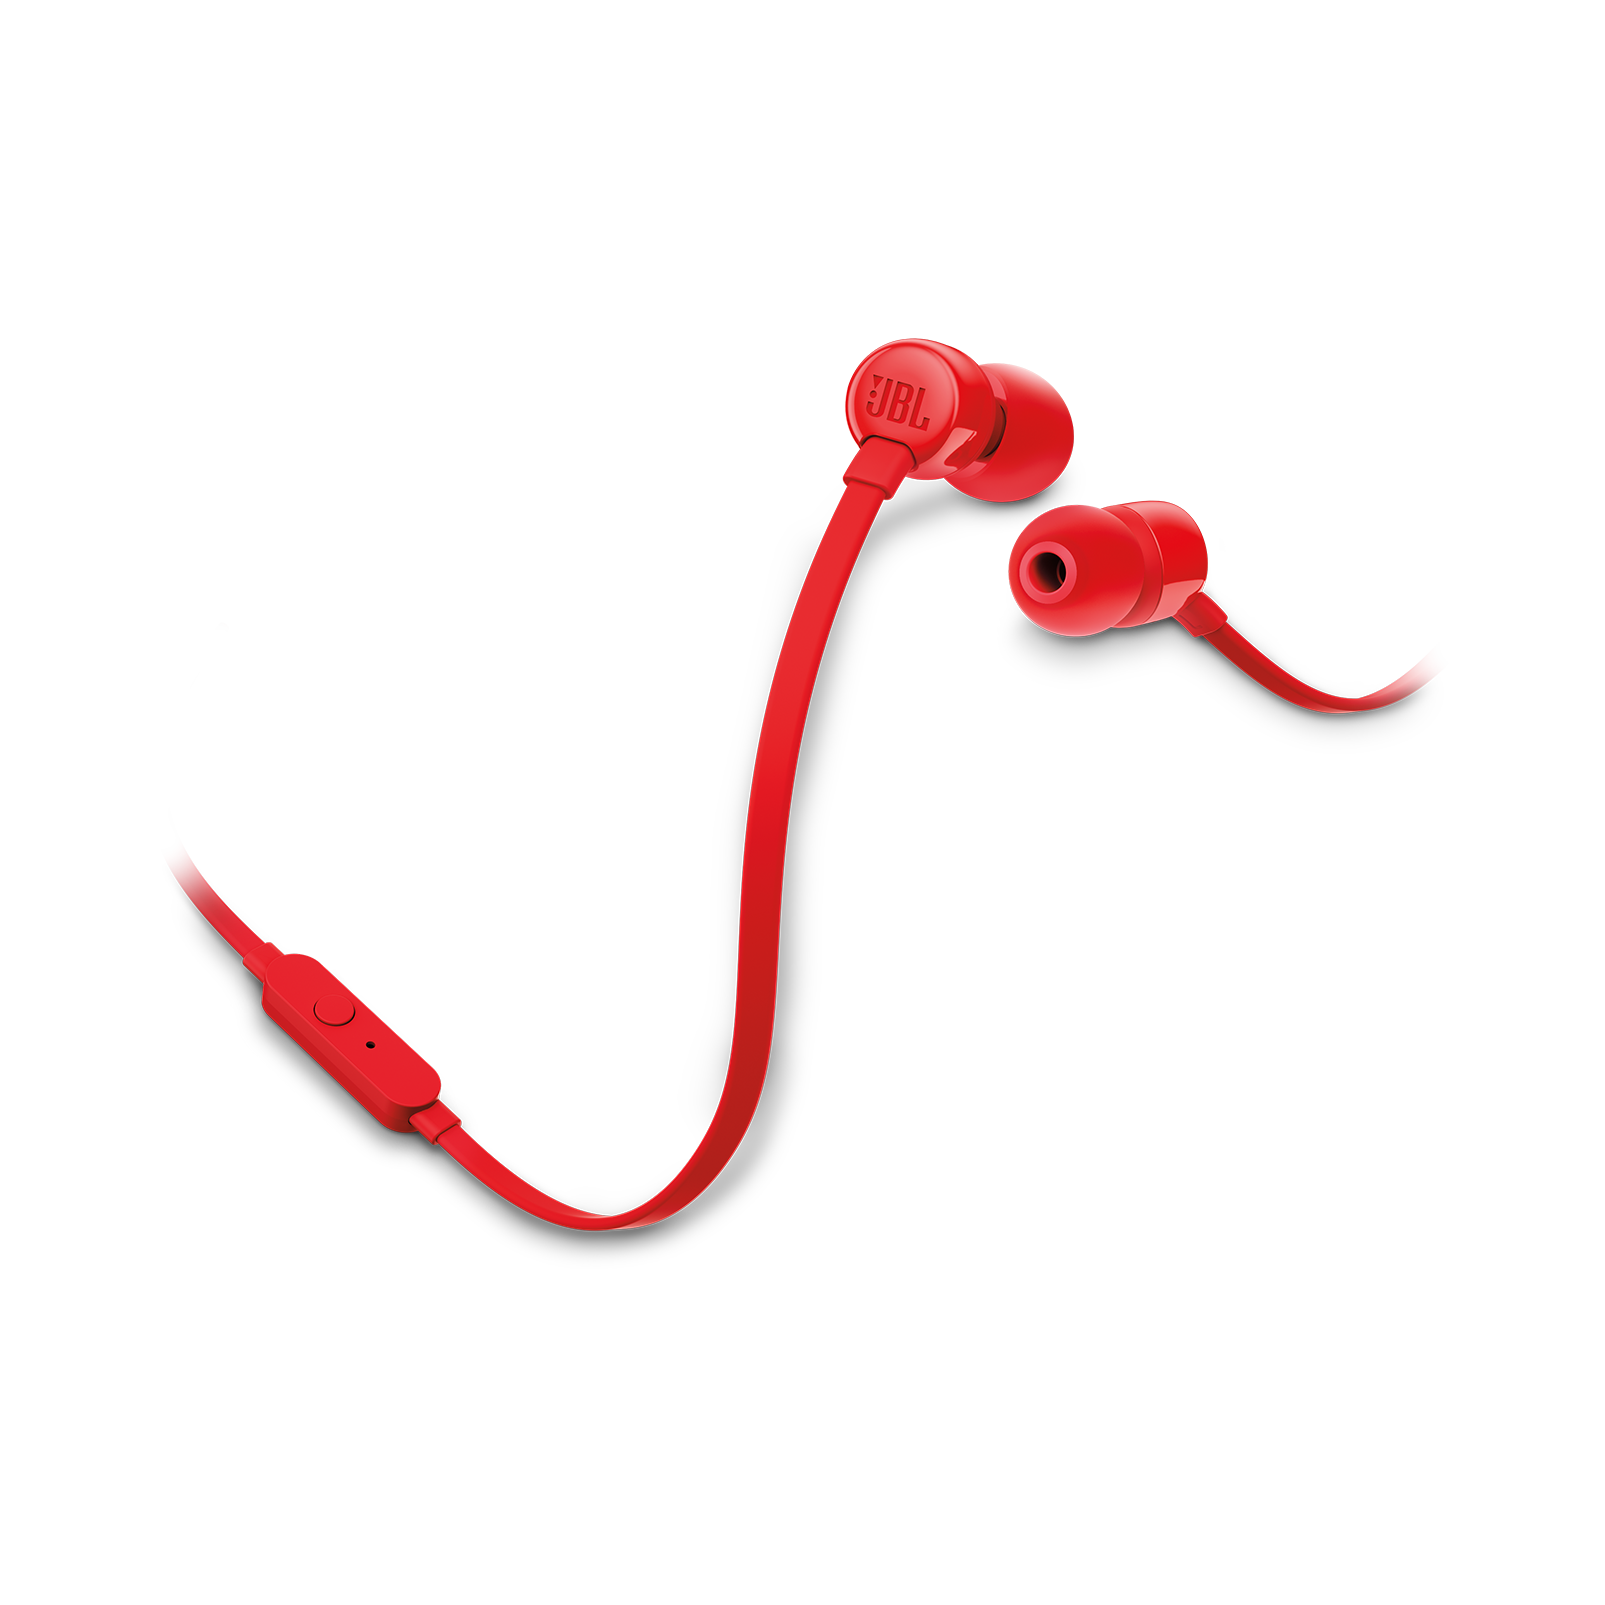 JBL TUNE 110 - Red - In-ear headphones - Hero